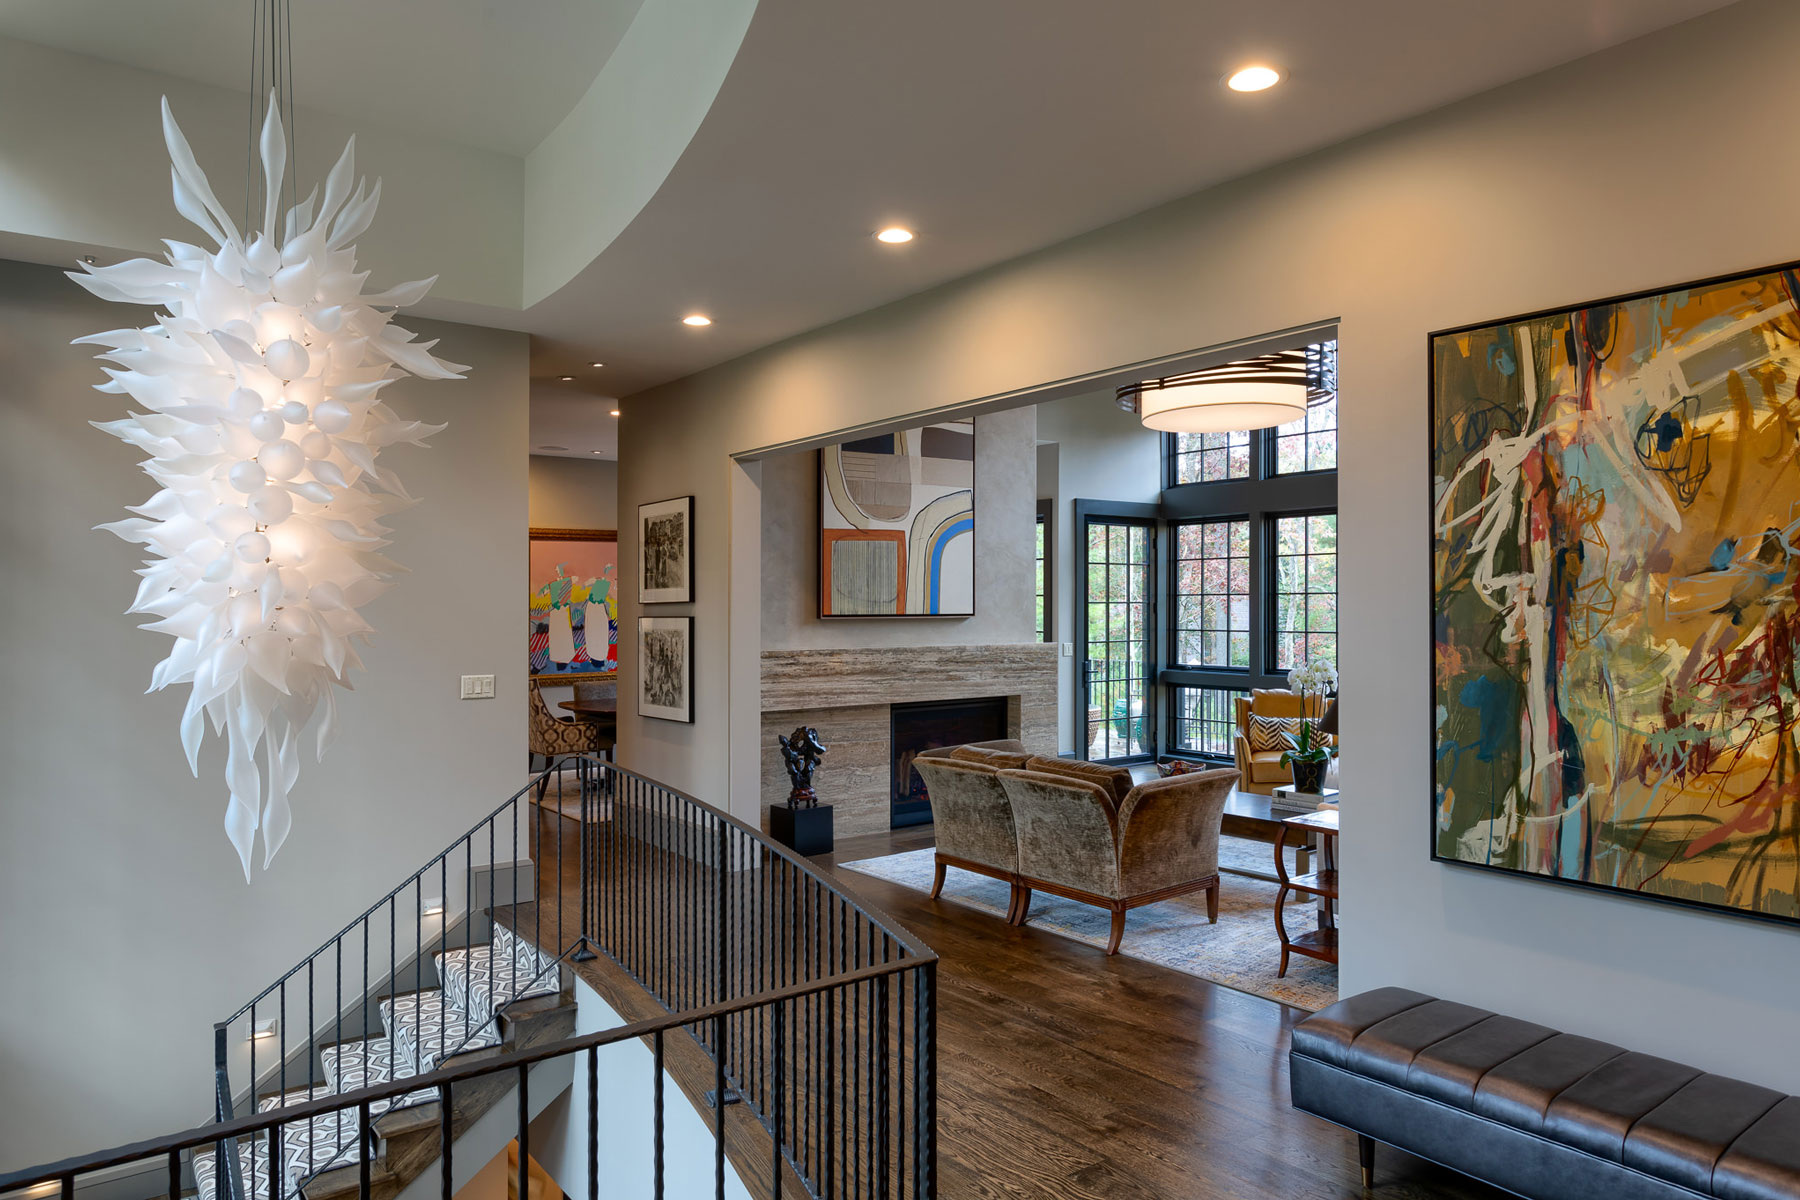 Interior entryway of mountain home with unique light fixture in 2-story foyer to lower level